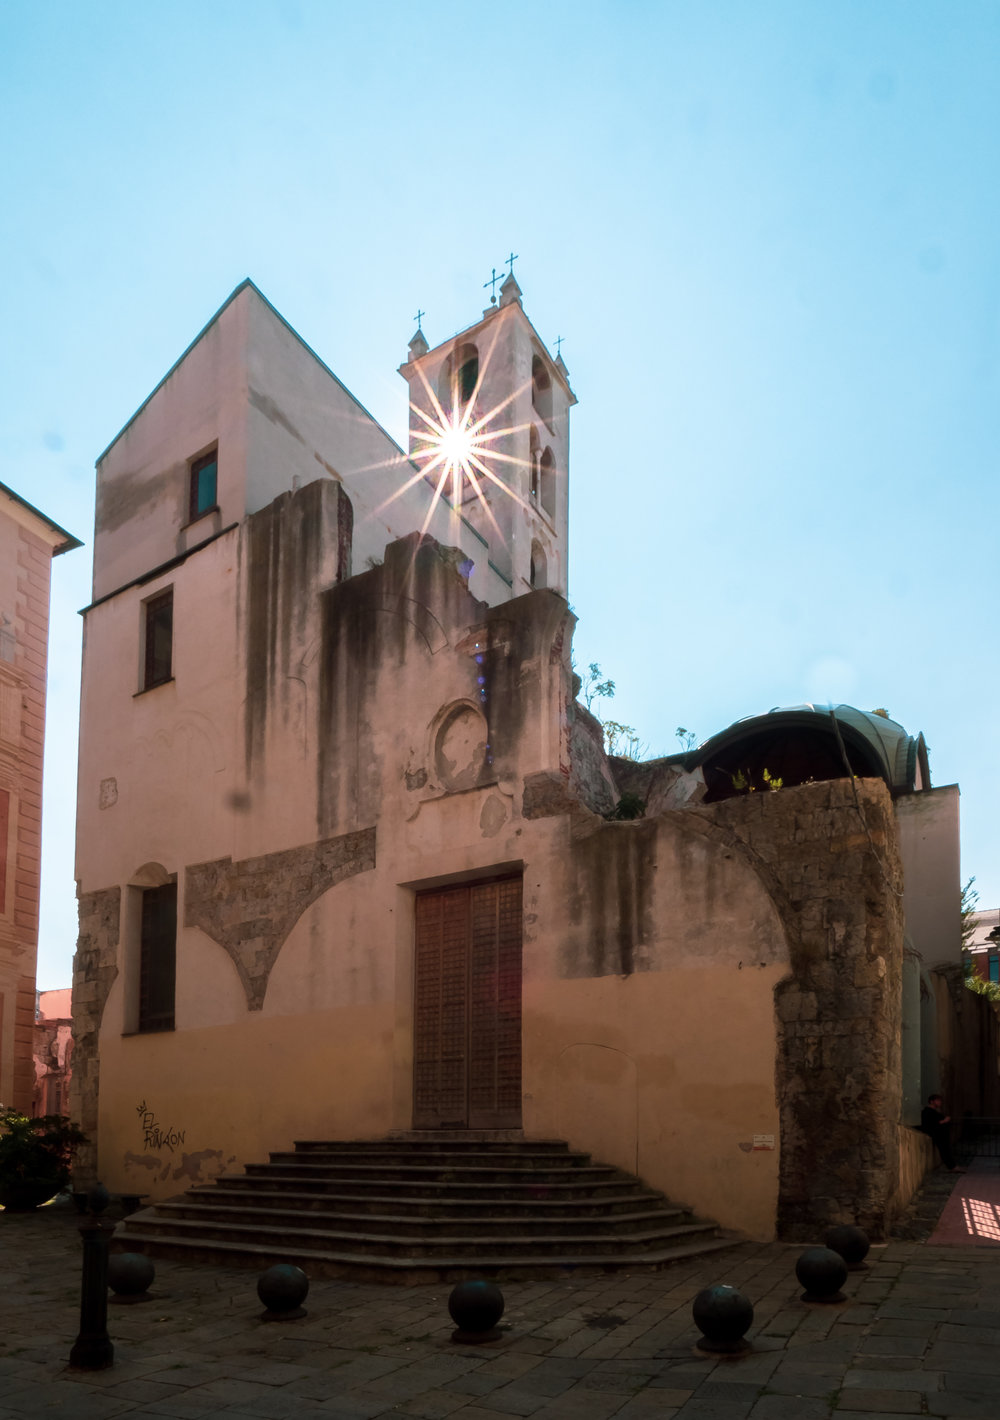 Church of Santa Maria in Passione